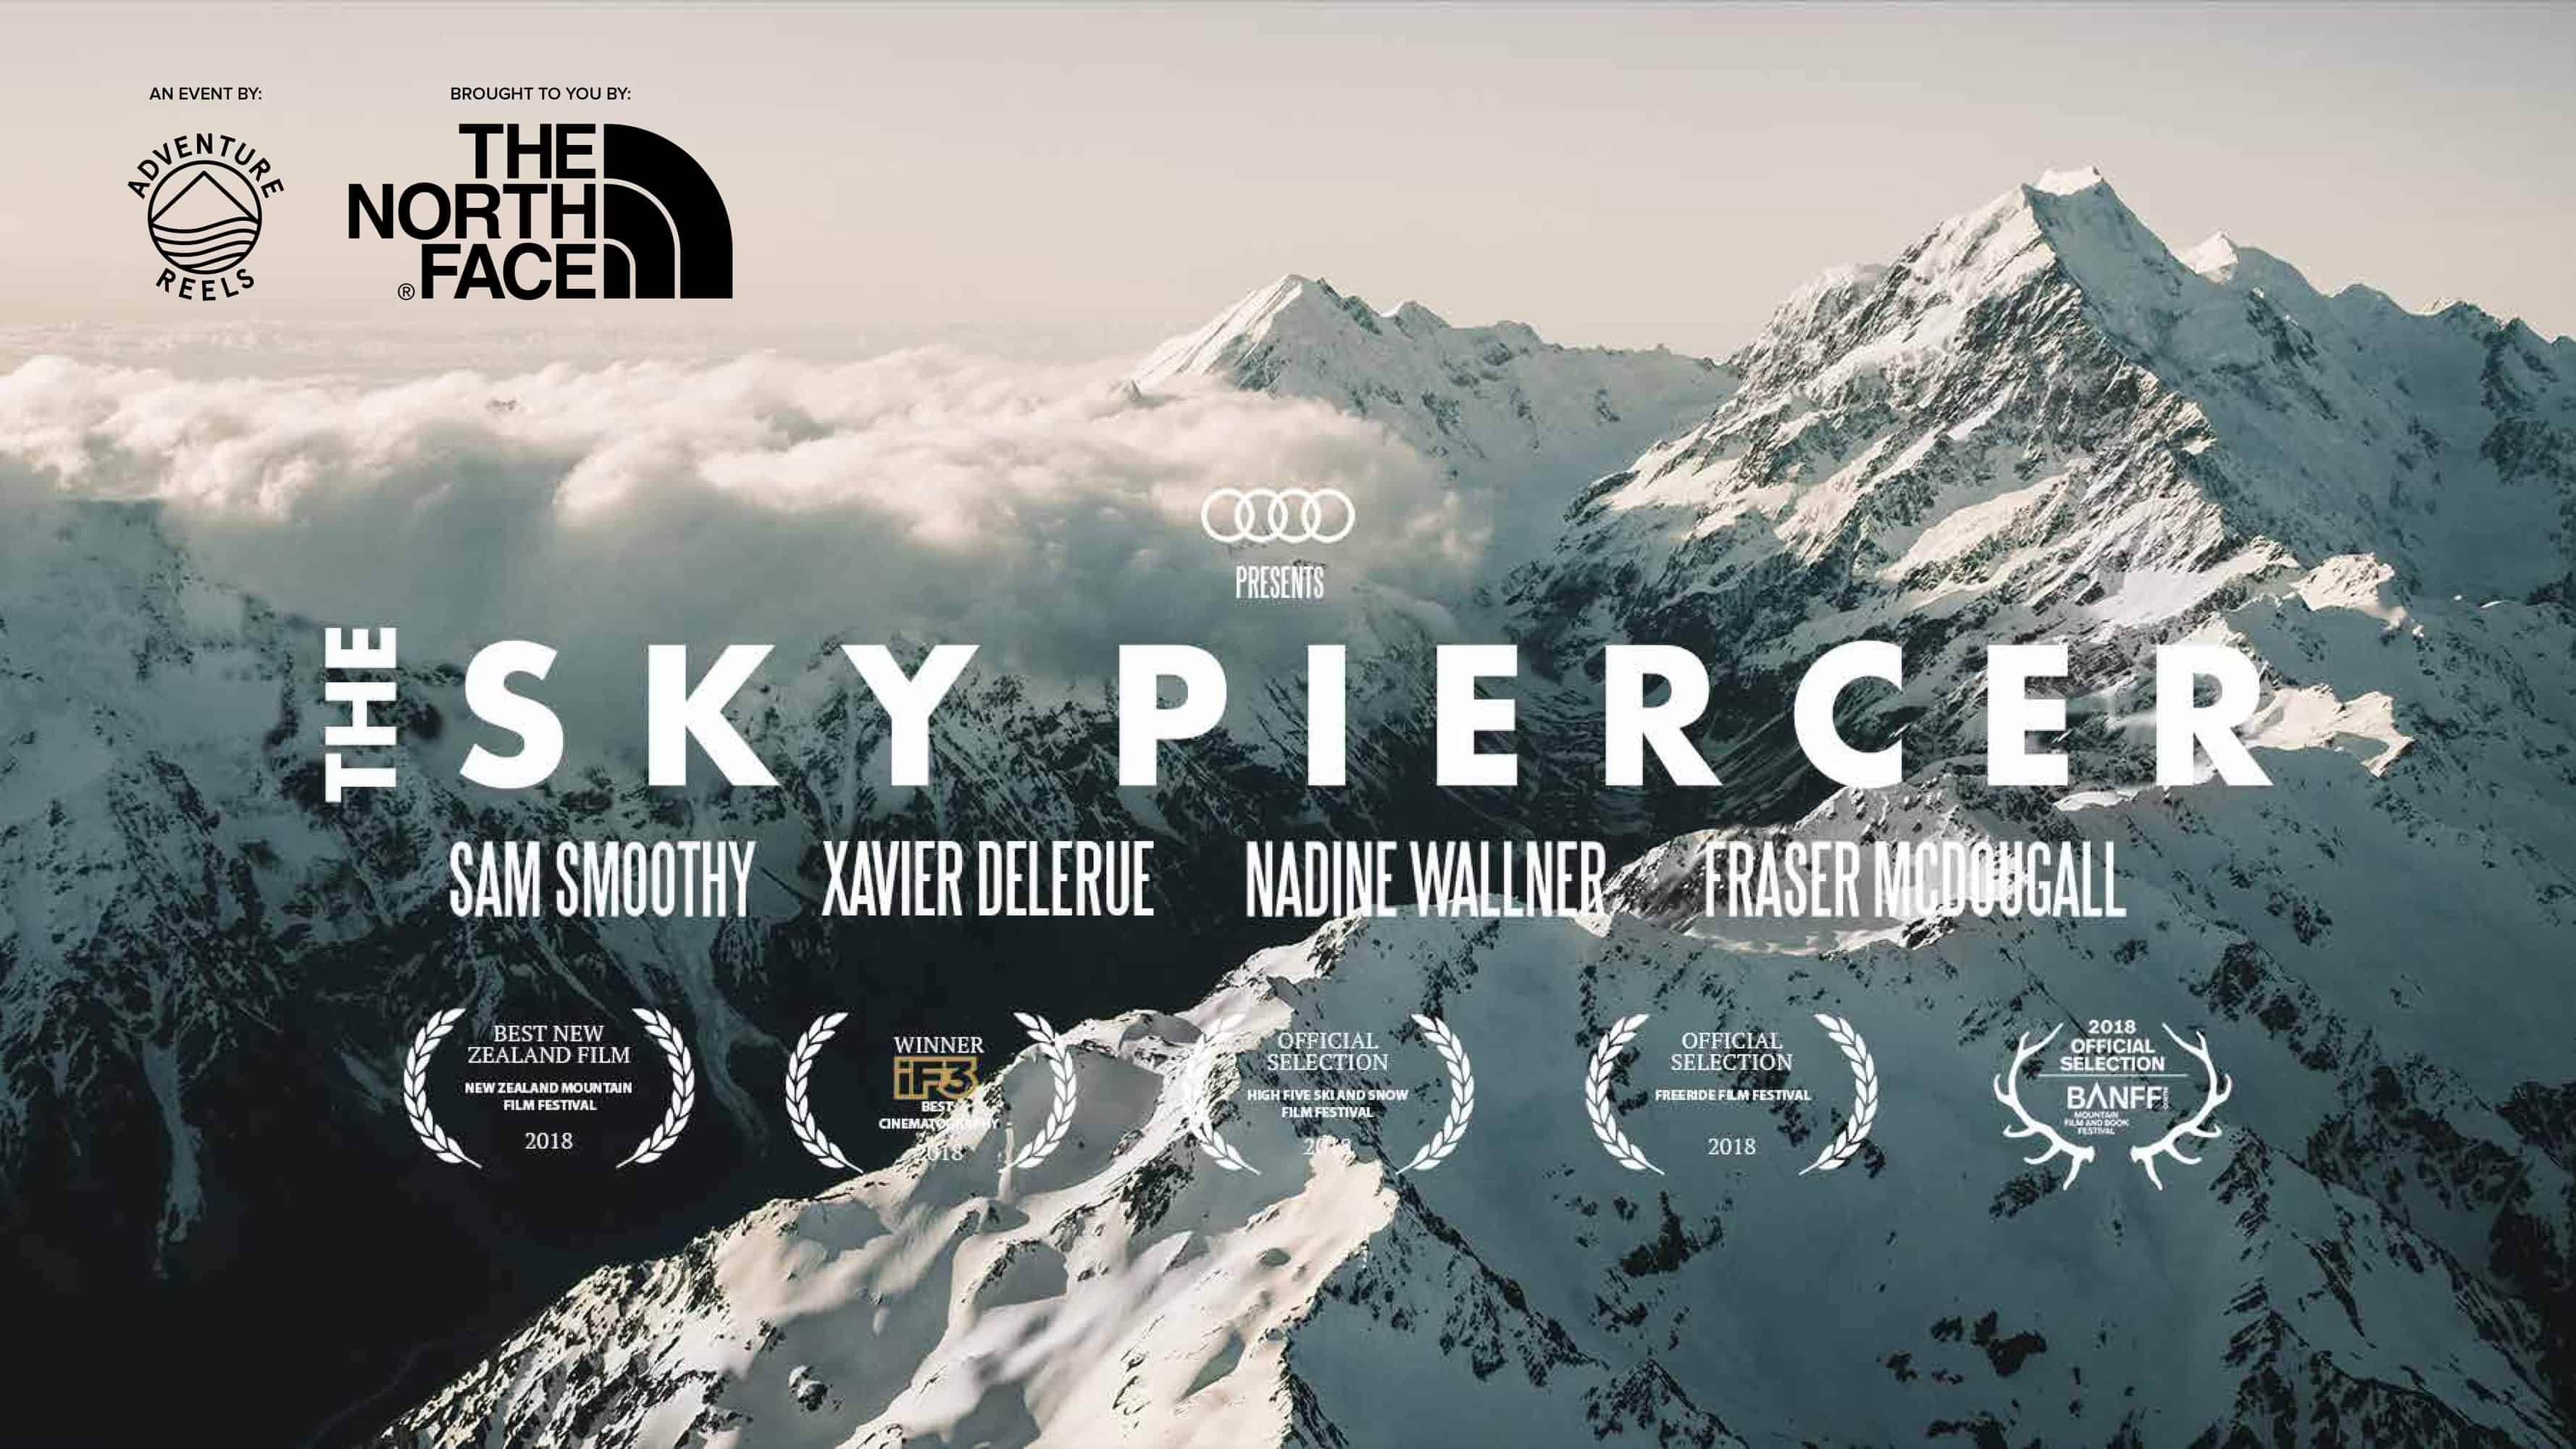 The Sky Piercer – award winning film about skiing NZ's Mount Cook screening in Sydney and Melbourne next week.